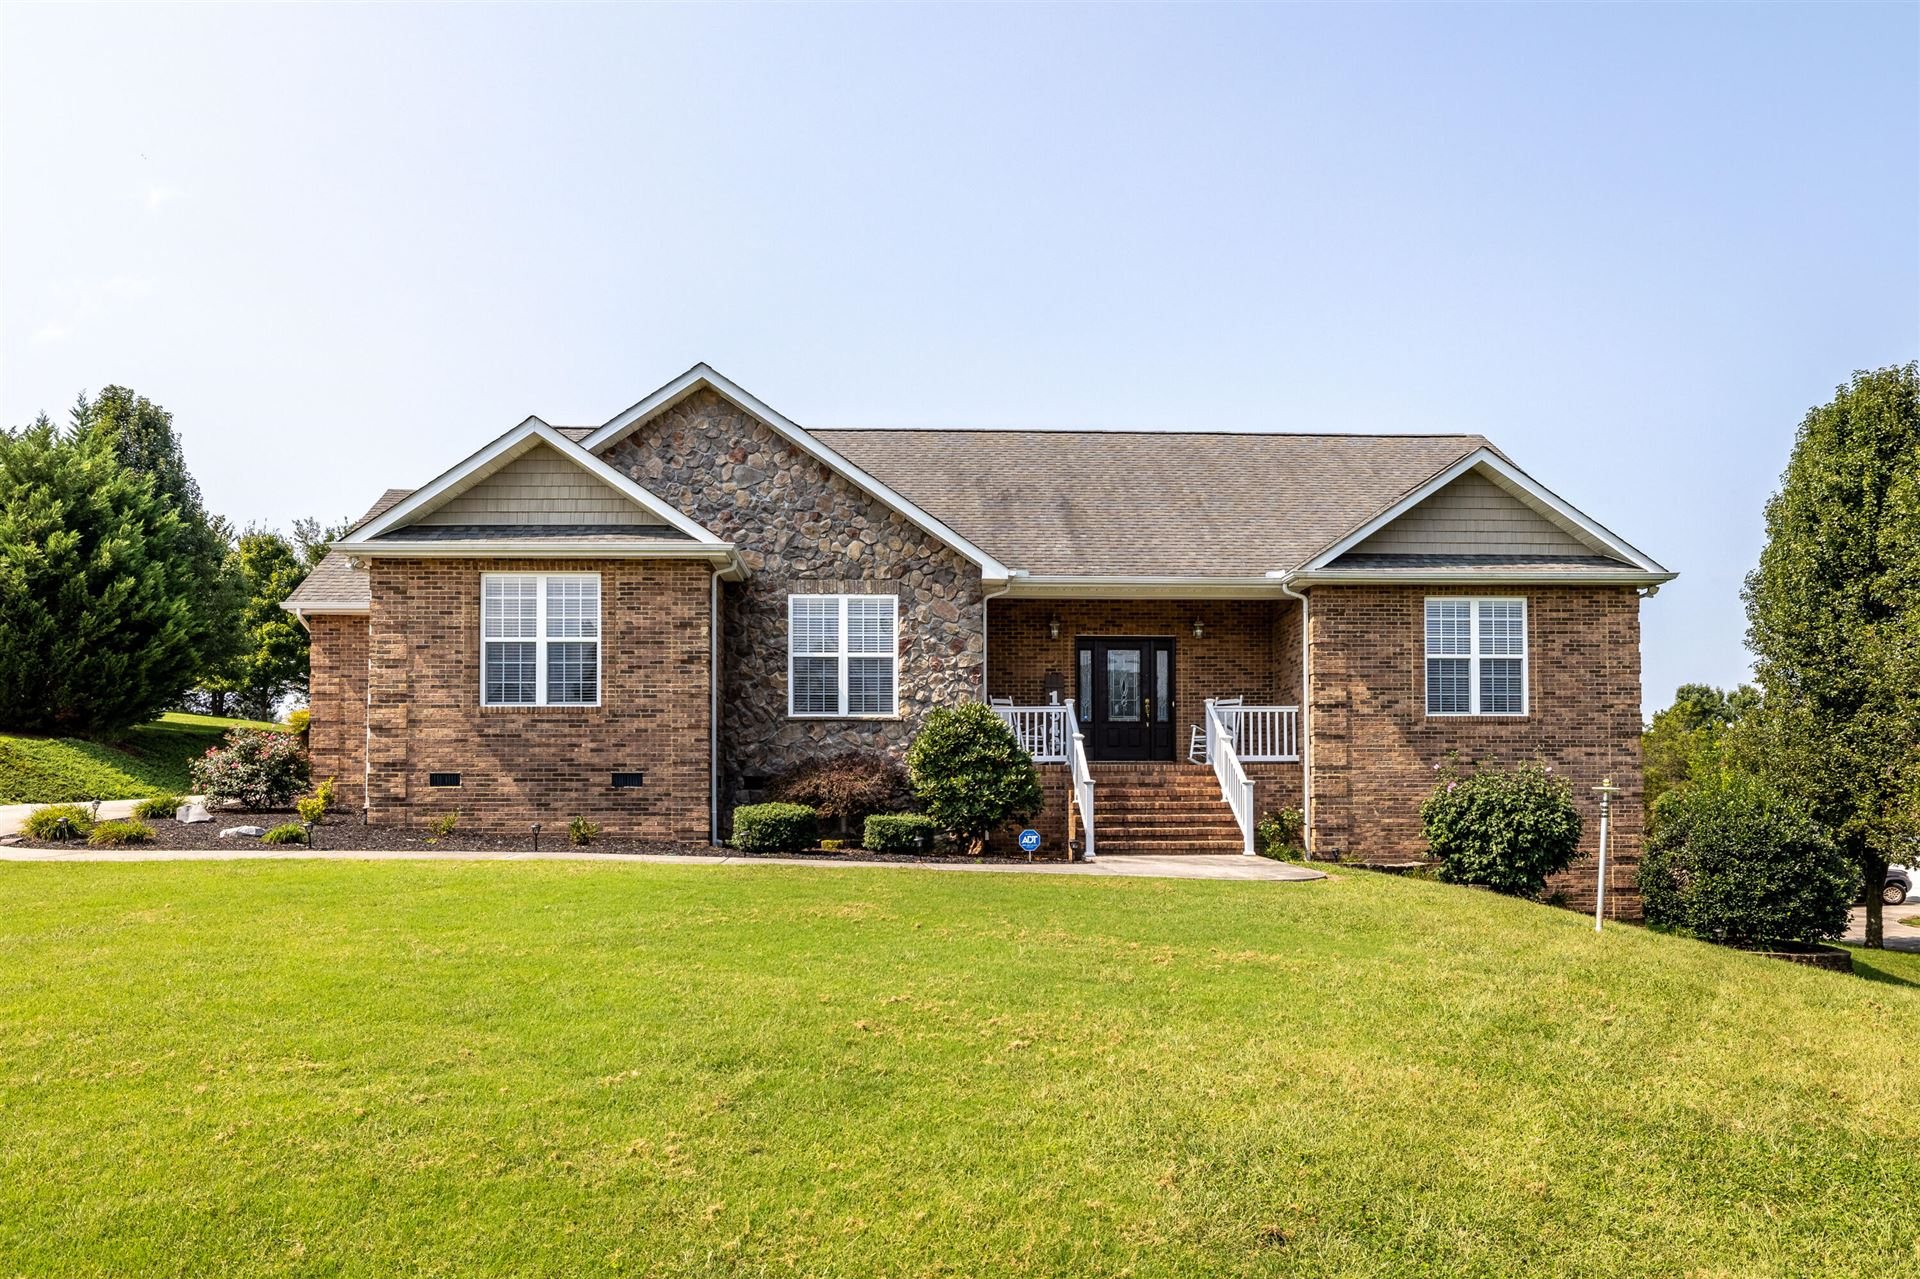 Photo of 1543 Mint Meadows Drive, Maryville, TN 37803 (MLS # 1167620)